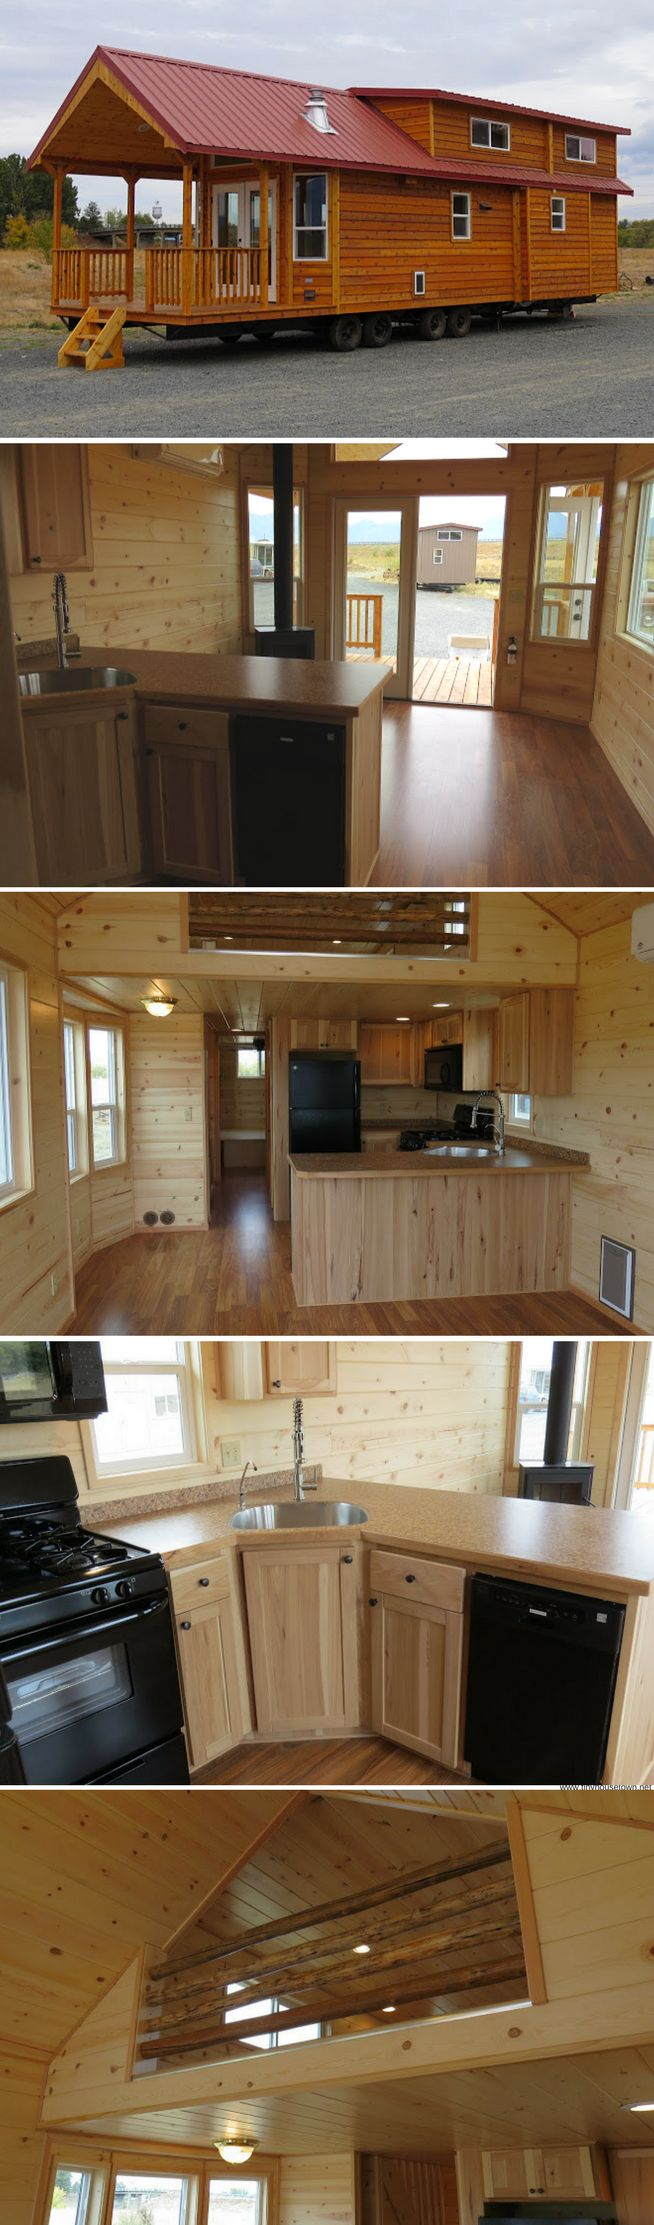 Classic Double Loft: a two bedroom park model cabin